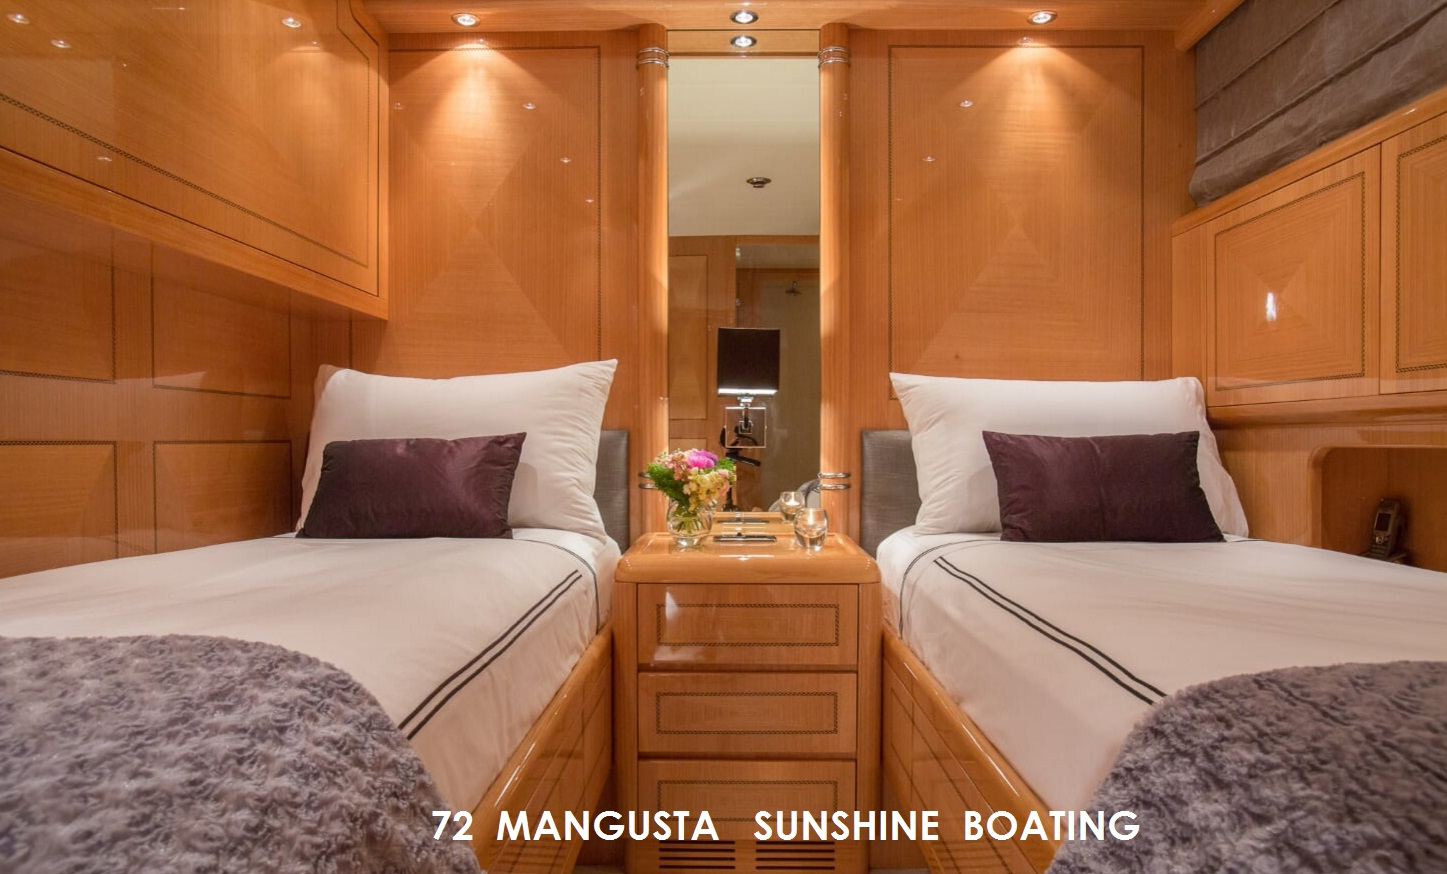 sunshine-boating-manusta-72-q